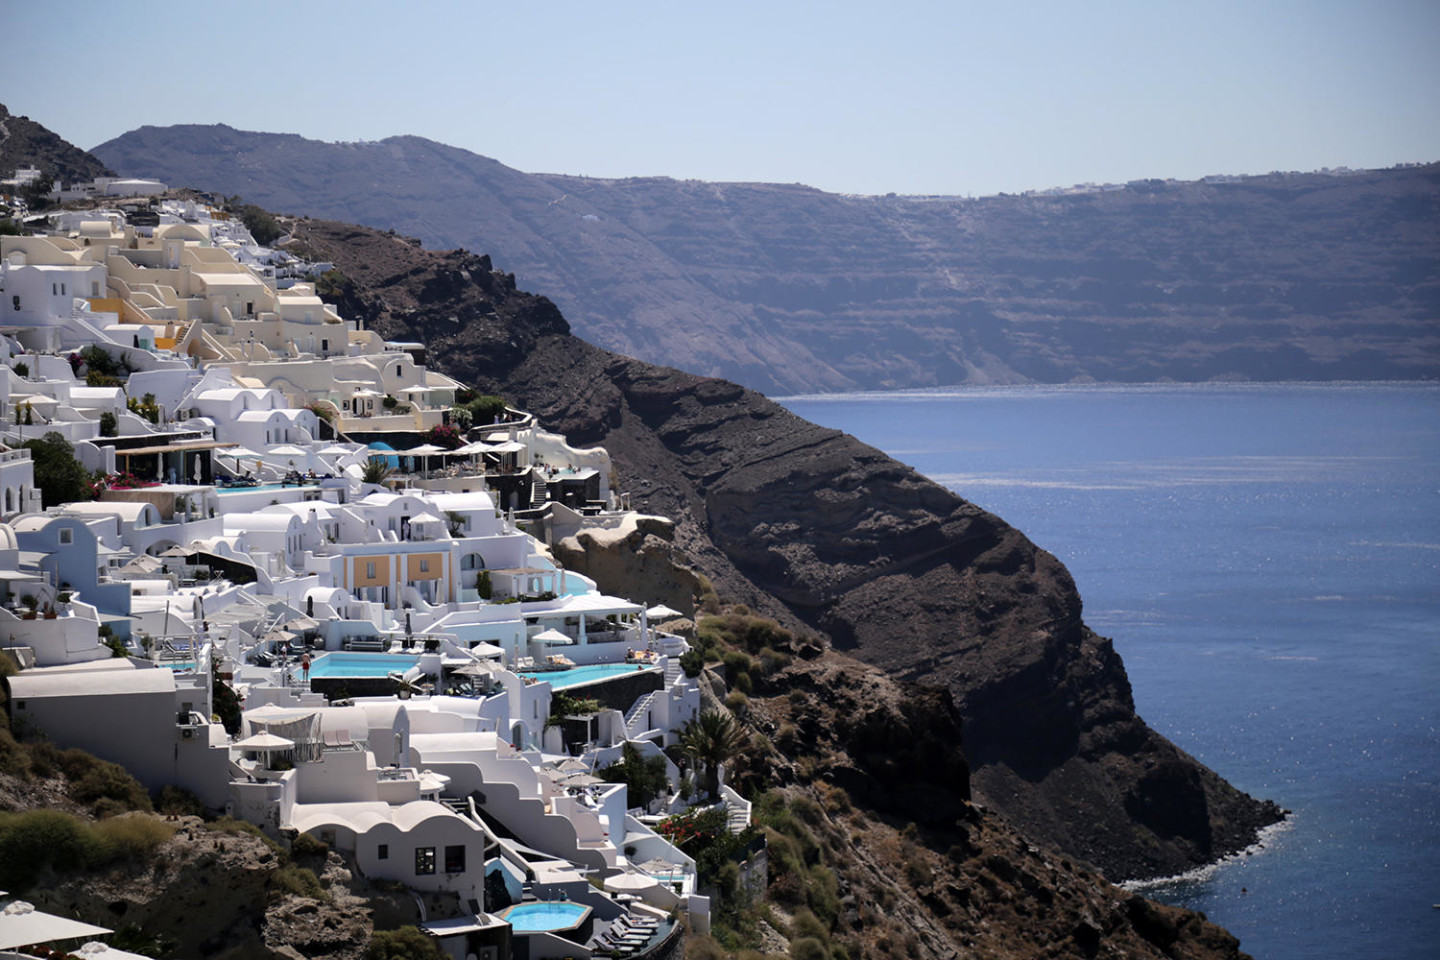 Santorini Travel Guide at Reasonable Prices